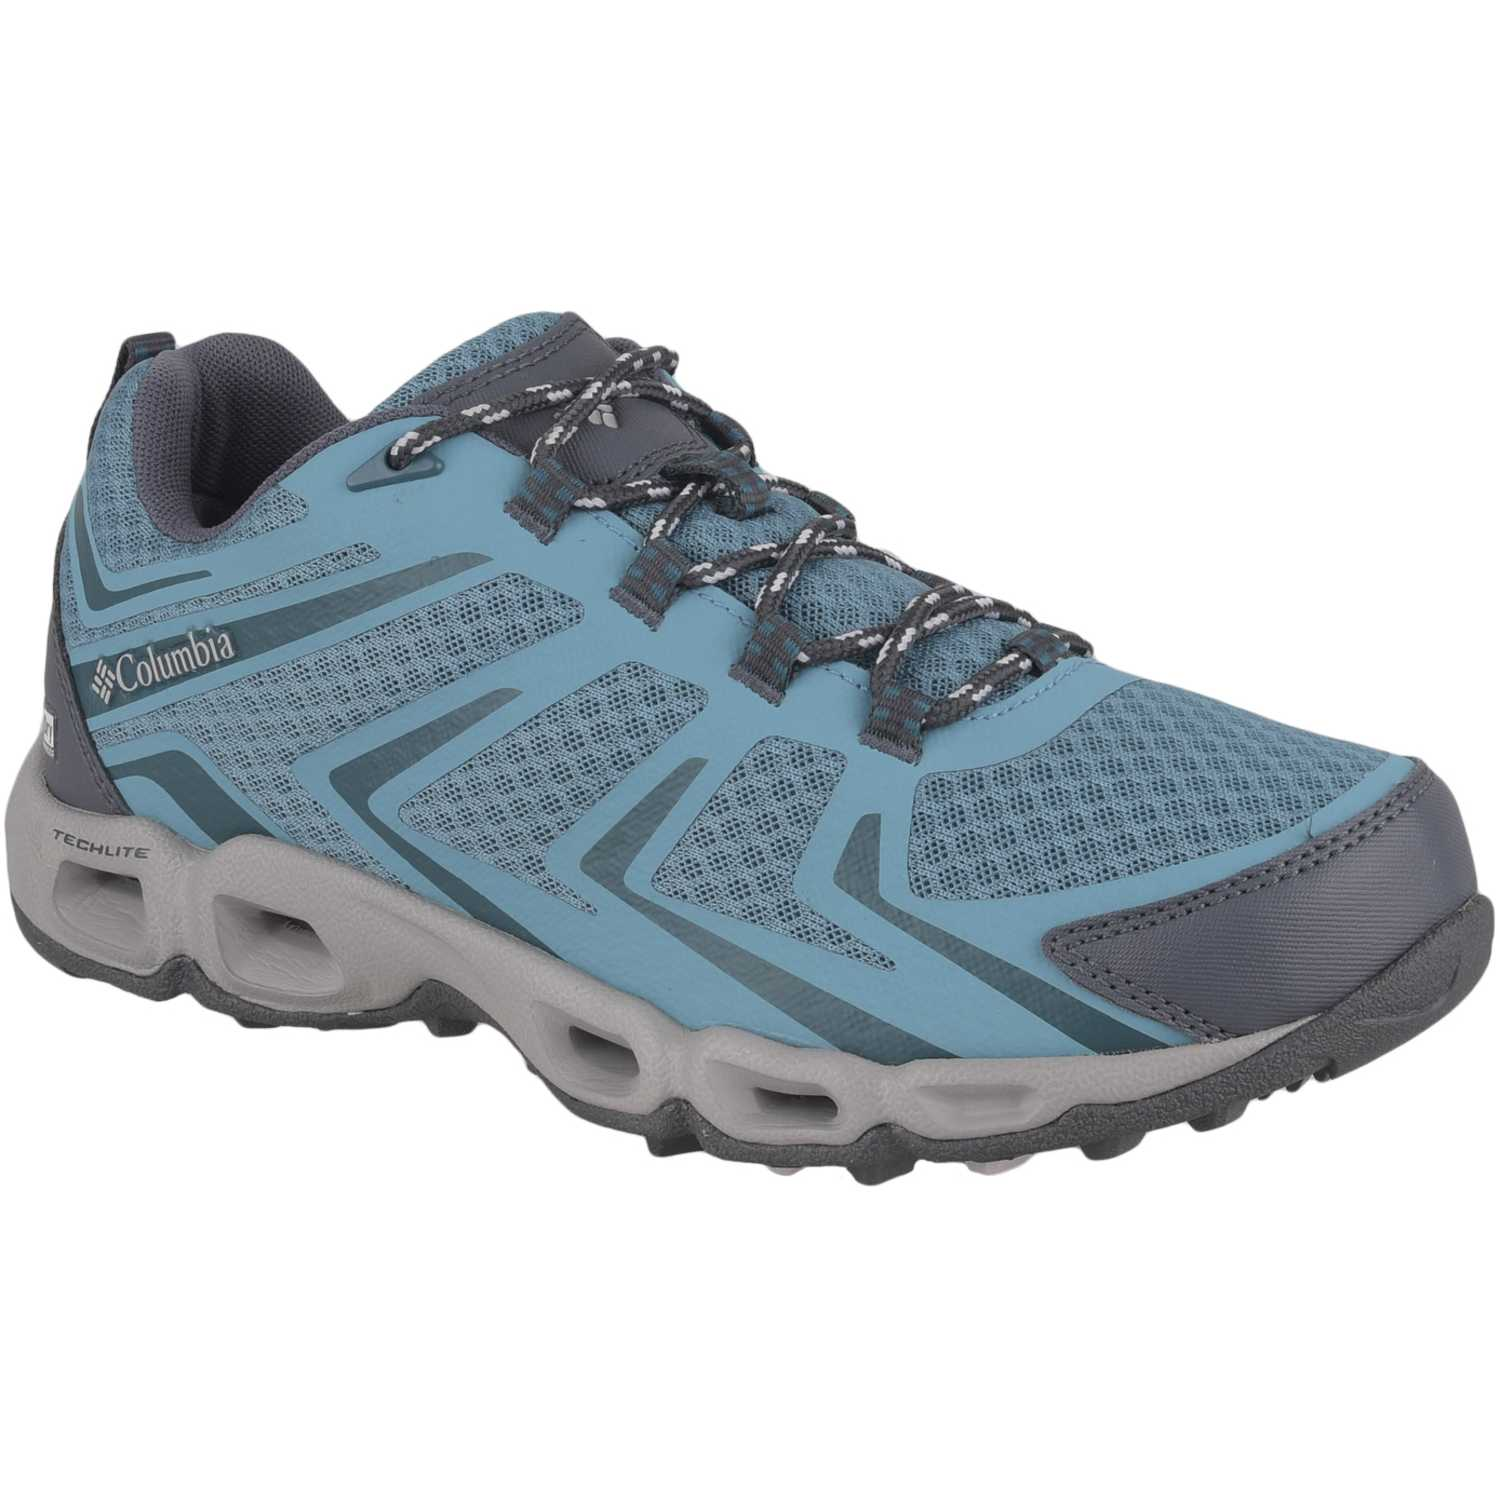 Columbia ventrailia 3 low Celeste / plomo Calzado hiking